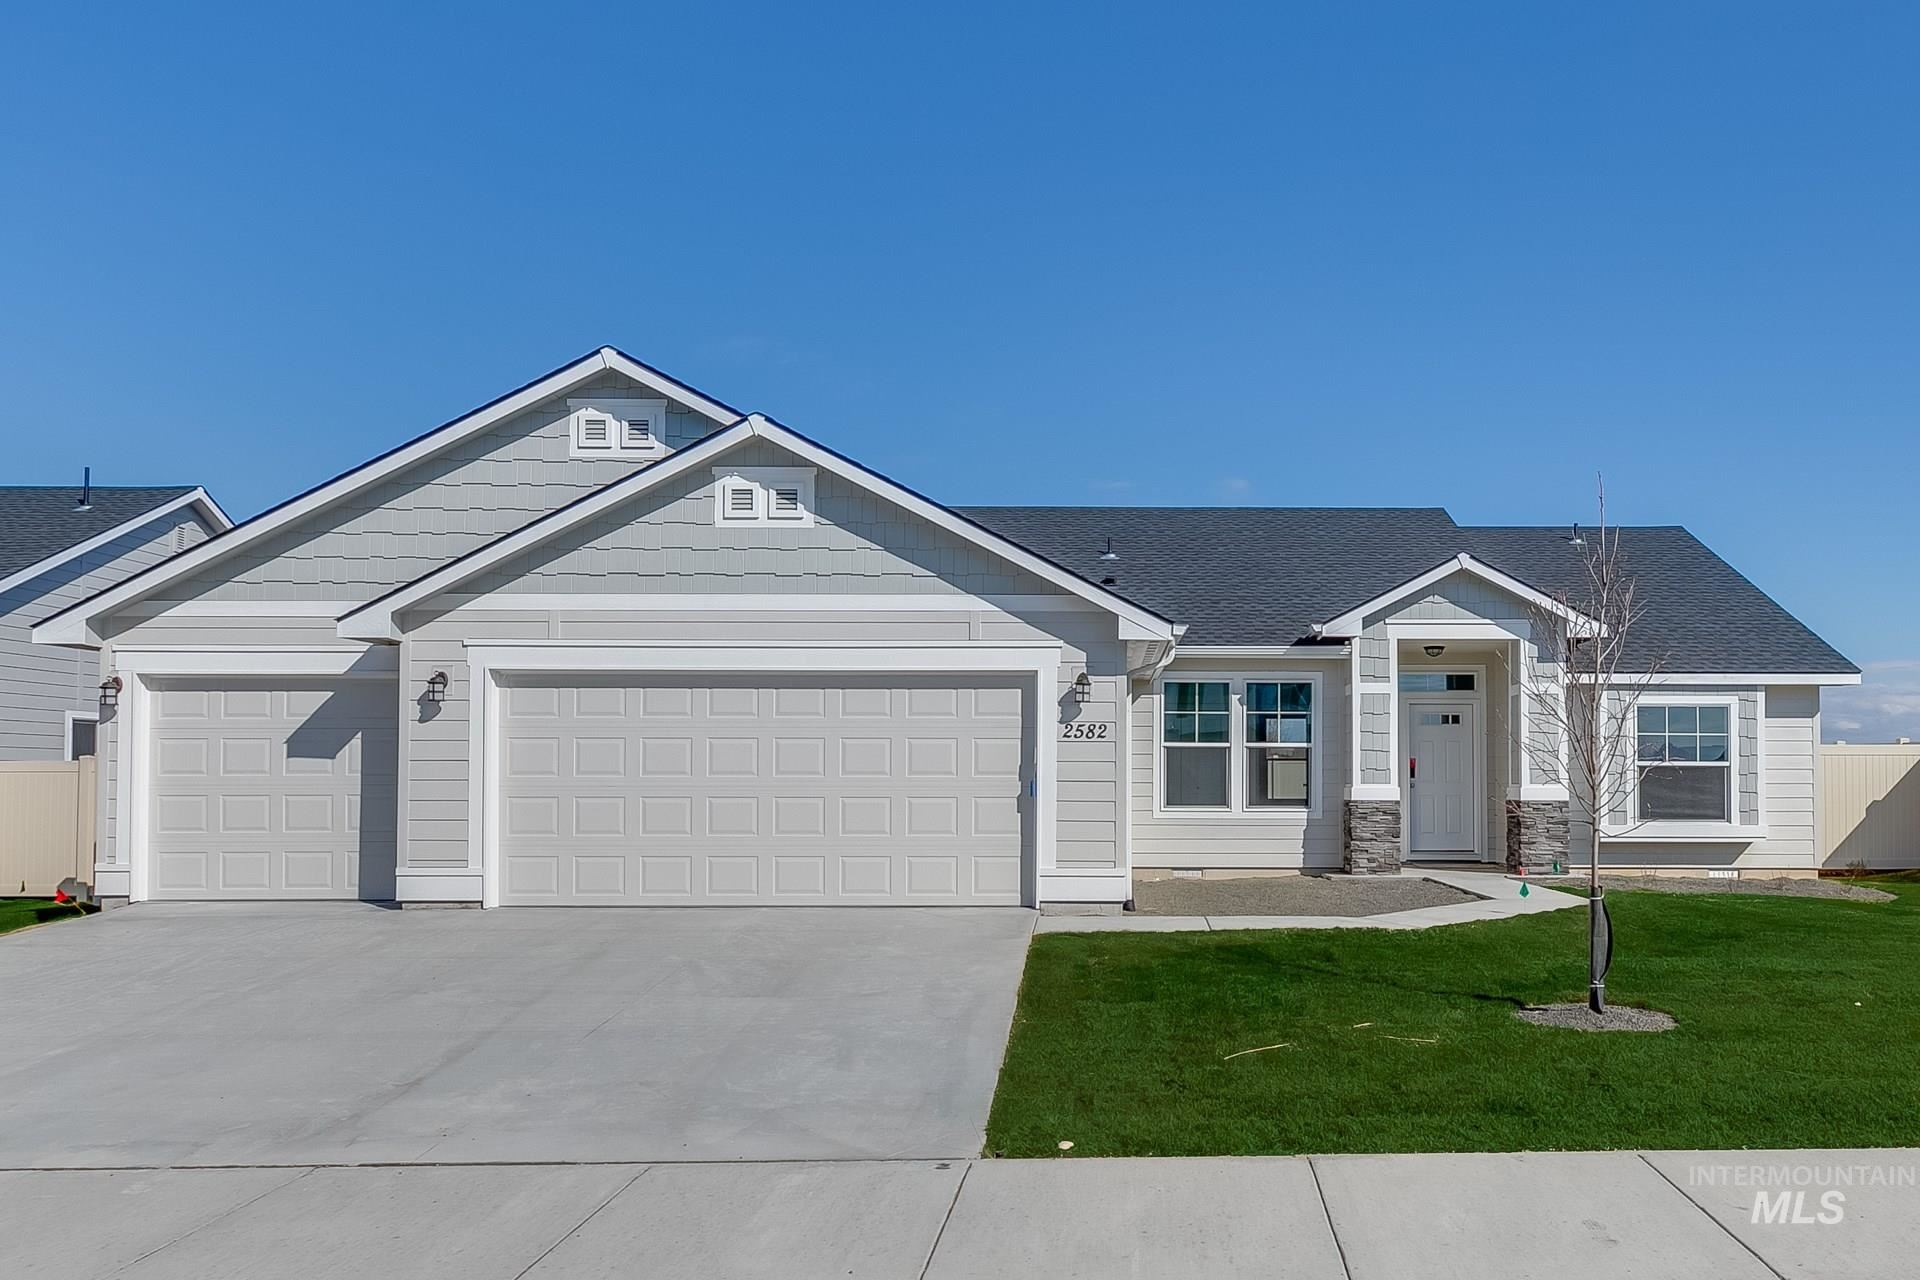 757 Grizzly Dr., Twin Falls, ID 83301 - MLS#: 98766740